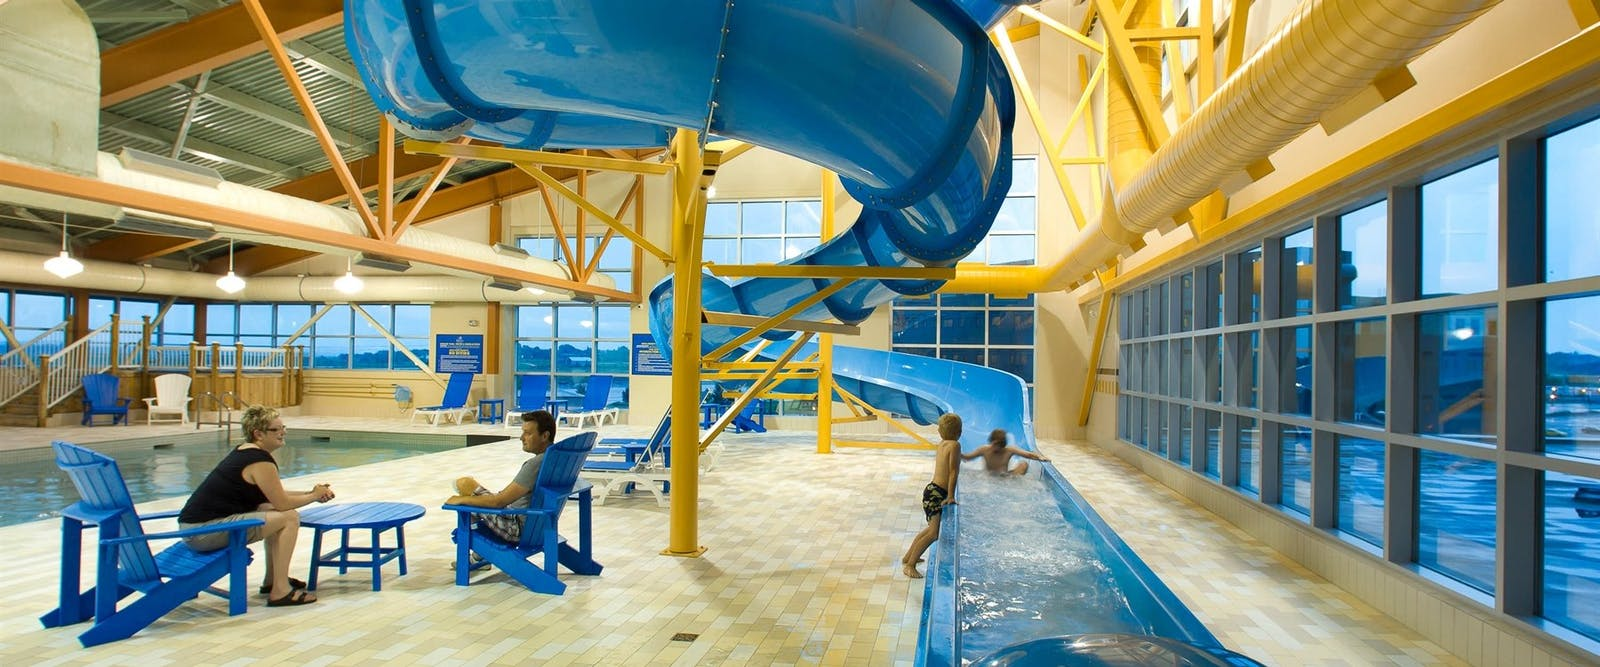 Pool area at Delta Beausejour, Moncton